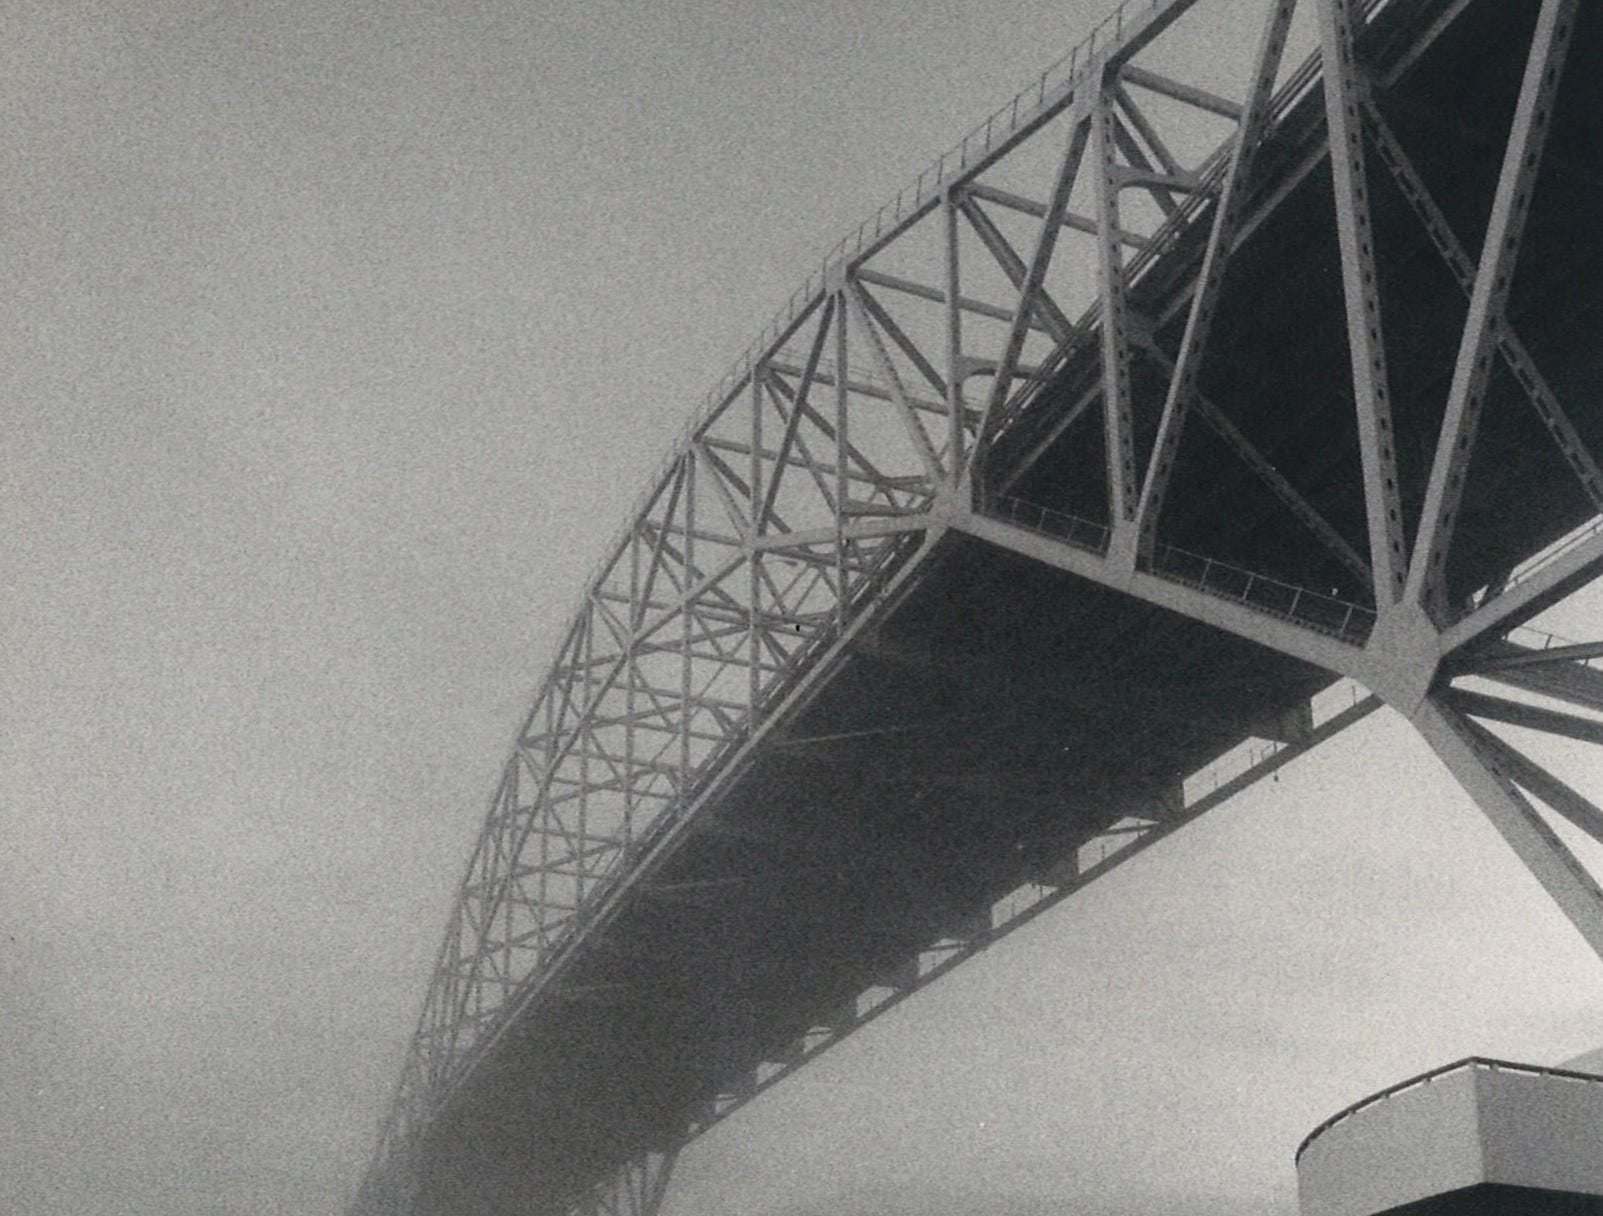 The Harbor Bridge in Corpus Christi in morning fog on Dec. 27, 1985.